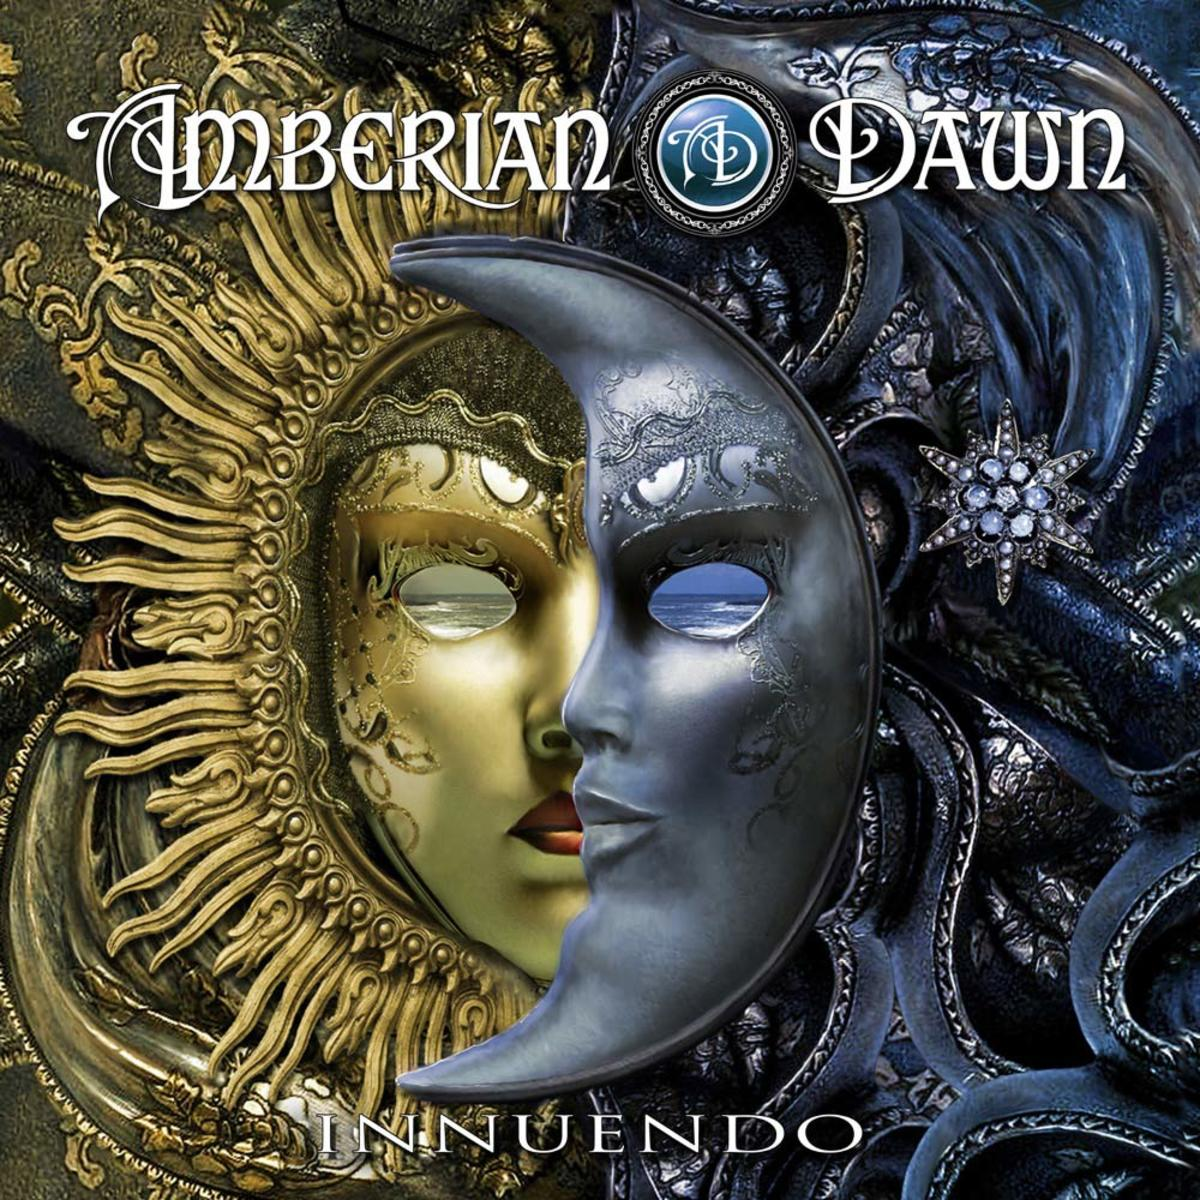 review-of-the-album-innuendo-by-finnish-power-metal-band-amberian-dawn